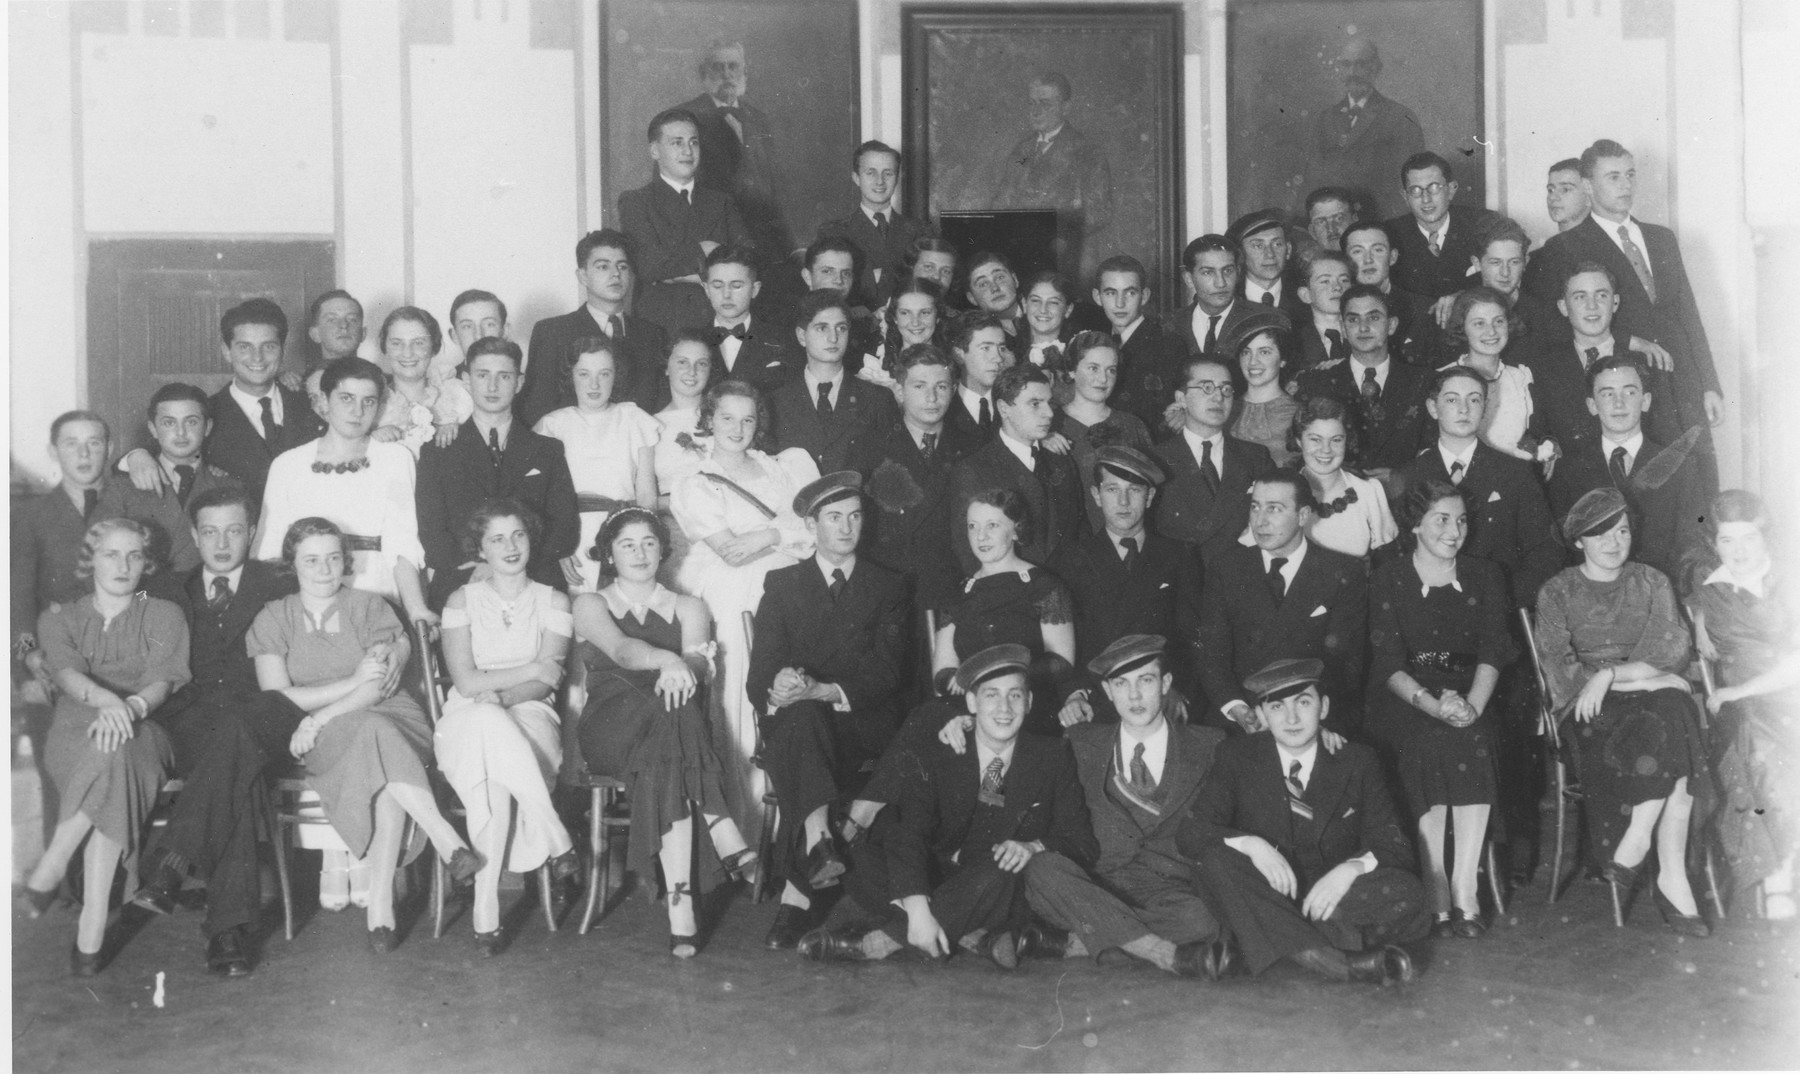 Members of the Jewish Hasmonea fraternity in Czernowitz.  There were four or five Jewish fraternities in the area, including Hebronia and Kadima.  Among those pictured, in the front row seated on chairs are:  Lotte Gottfried (far left); Joszi Krauthammer (second from the left); Hedwig Langhaus Brenner (third from the left); Herbert Gabor (sixth from the left); Jusiu Nagel (eighth from the left); Kaethe Zallik (tenth from the left); Heinrich Teitler (in the row behind and to the right of Nagel); Gerhard Krauthammer (top row, far right).